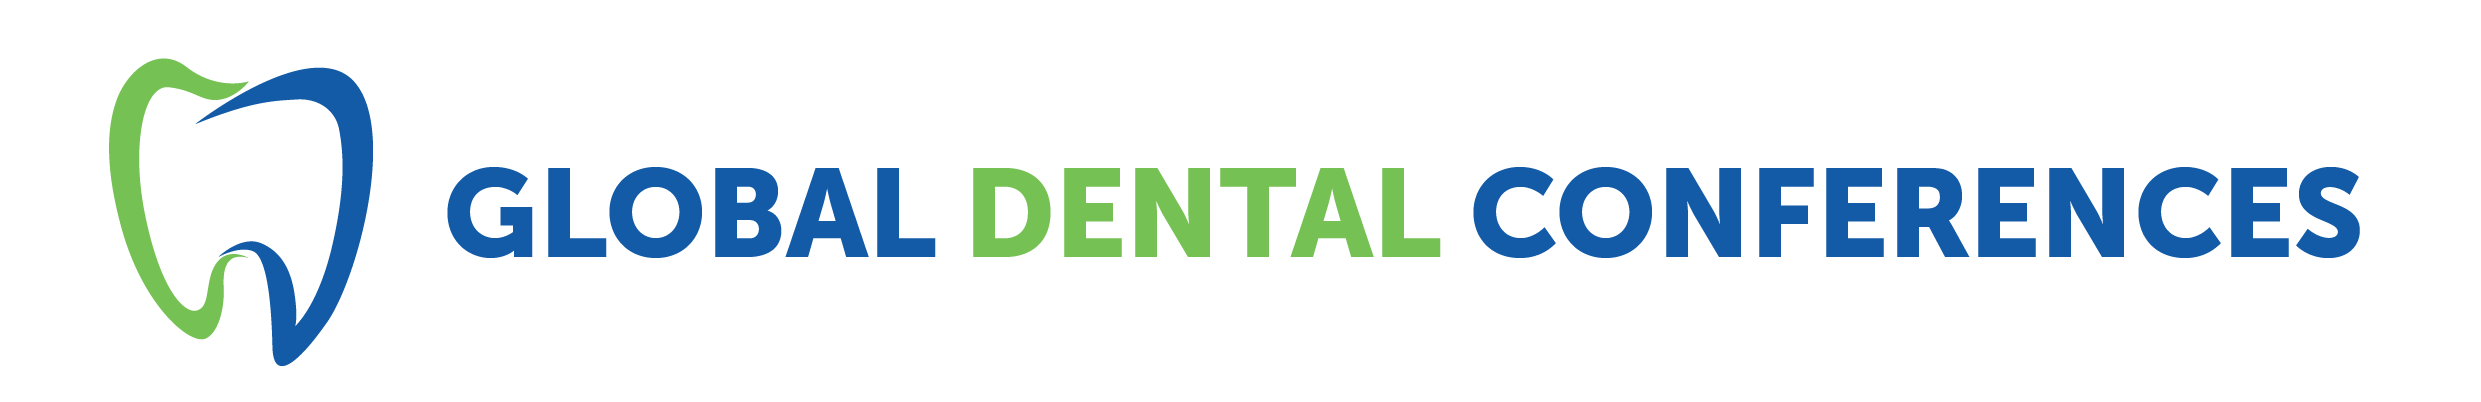 Dental Conferences | Dentist Conferences | Dental CME Conferences